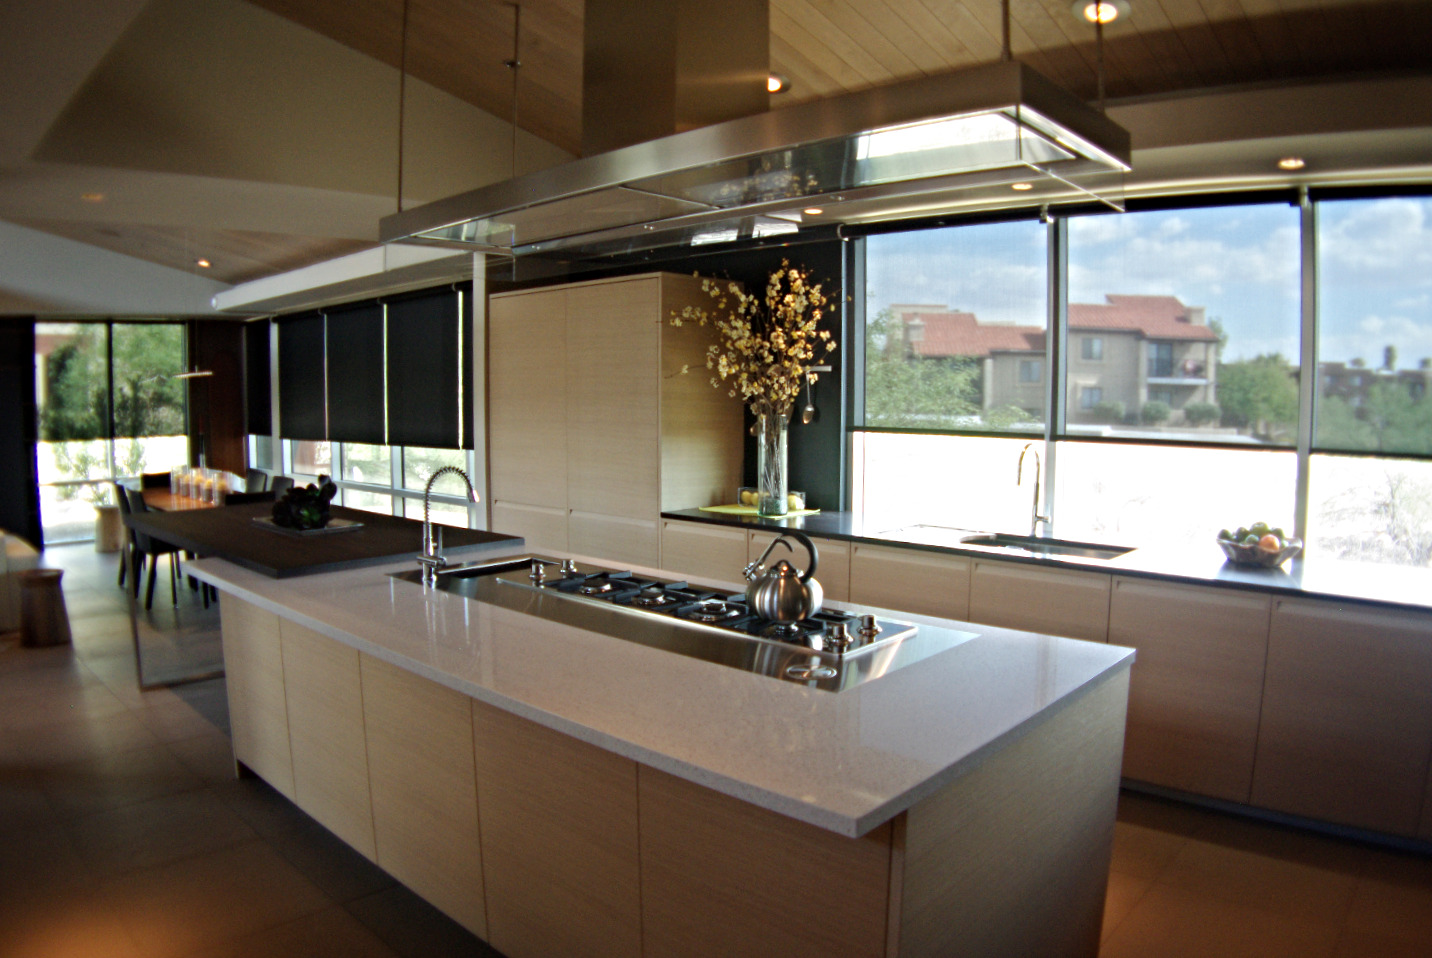 ASL kitchen lighting & shade design